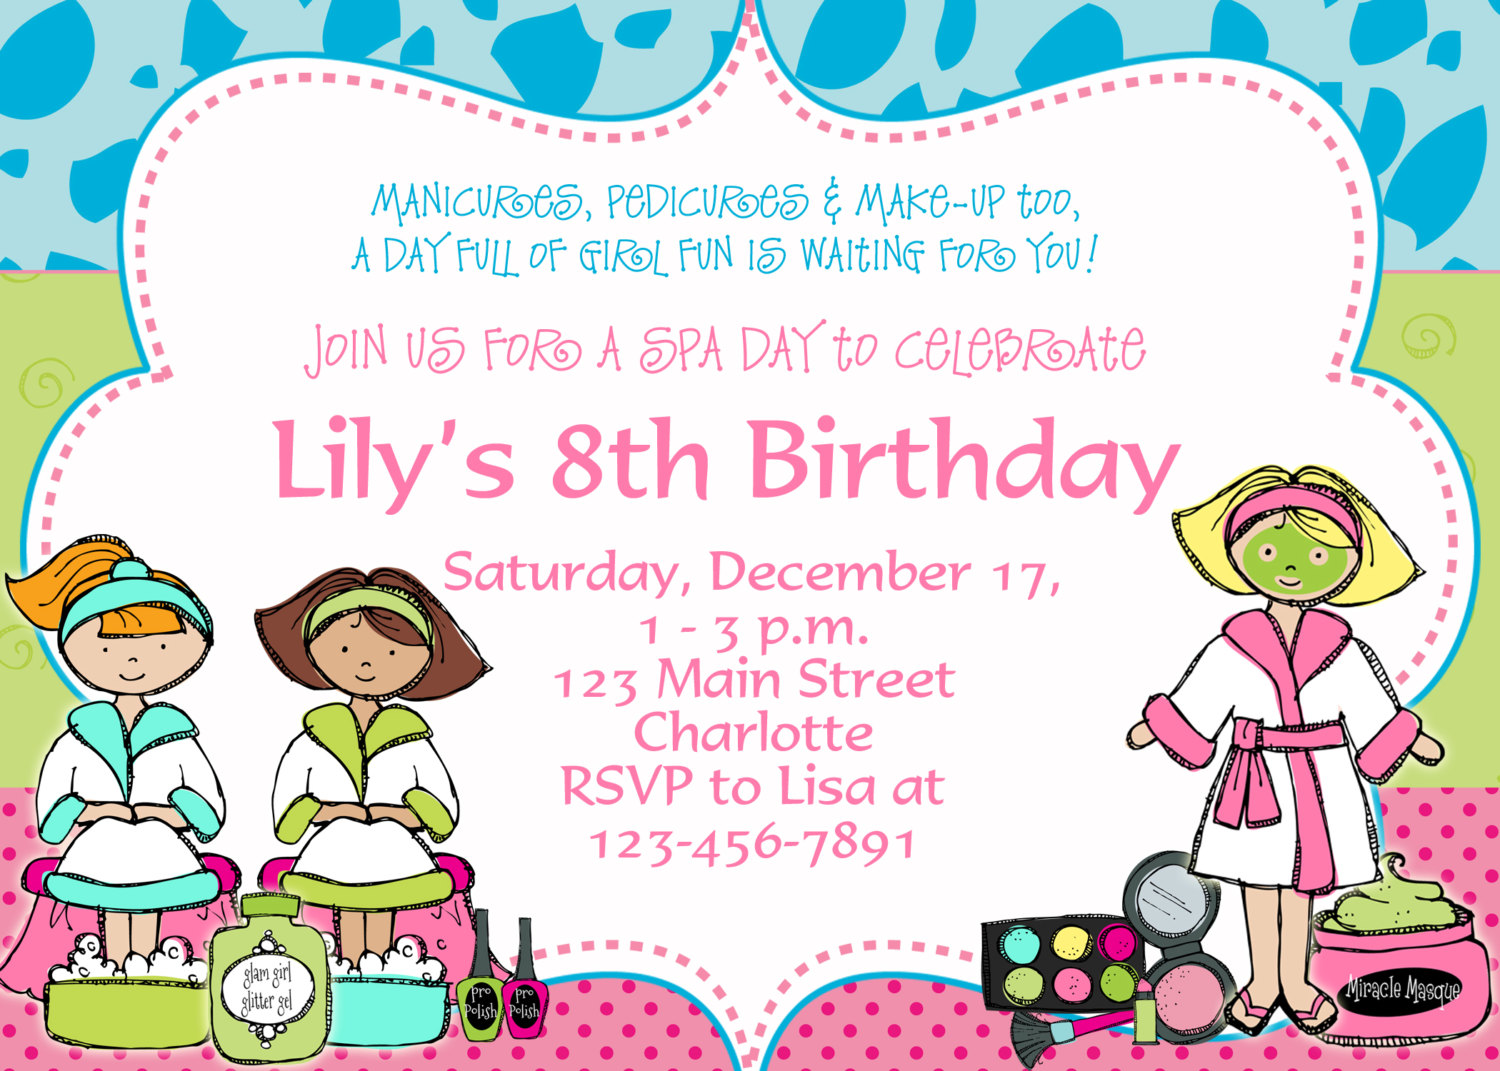 create birthday invitations free online with photo ; Stylish-Free-Online-Birthday-Invitations-To-Design-How-To-Make-A-Birthday-Invitation